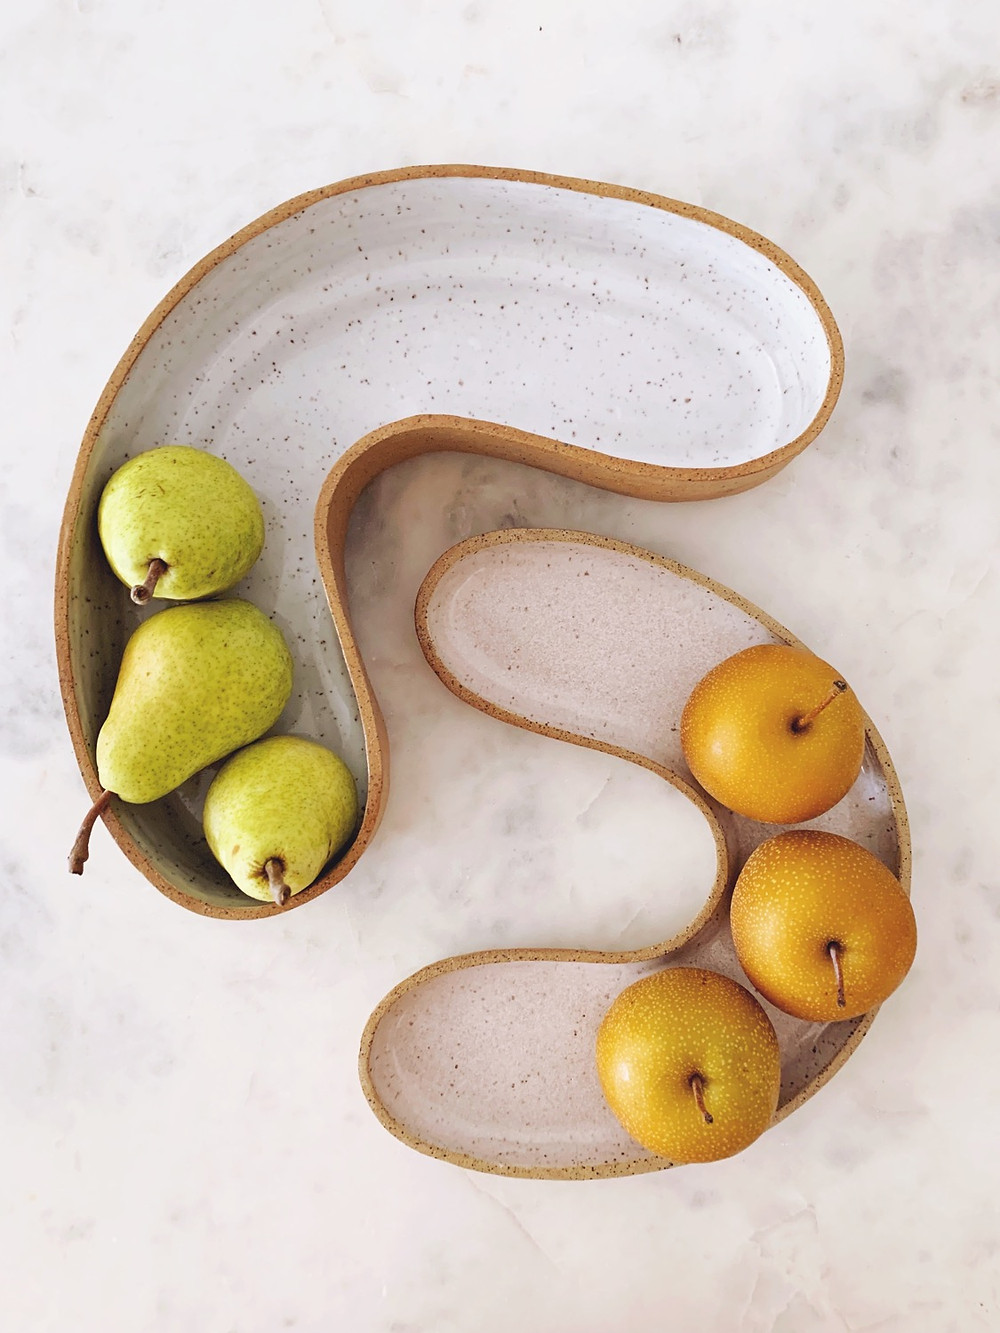 Bilbao serving bowl and dish with pears from the Peekskill Farmer's Market